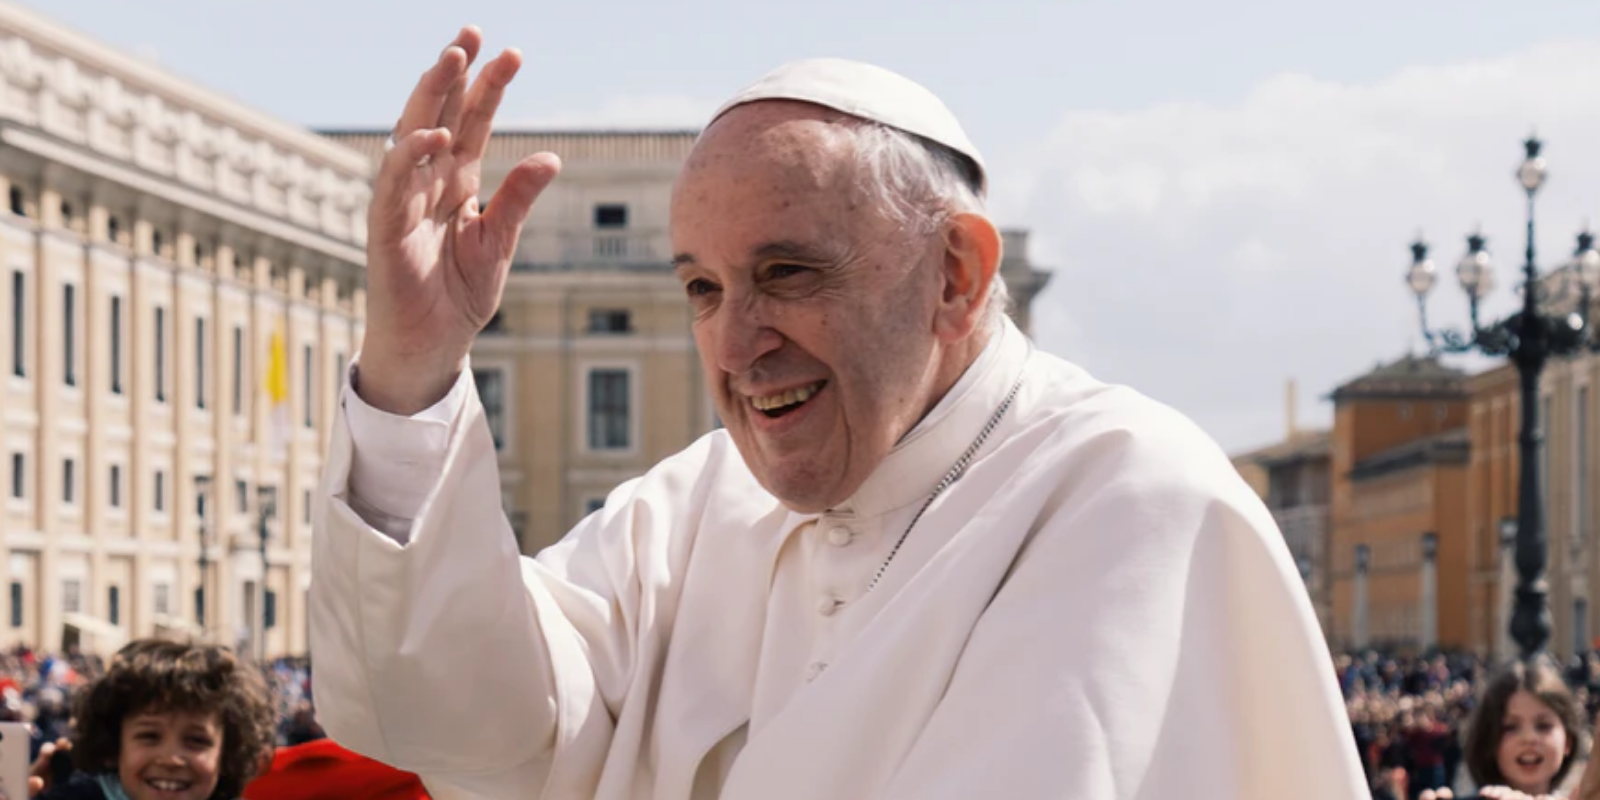 BREAKING: Pope Francis endorses same-sex civil unions